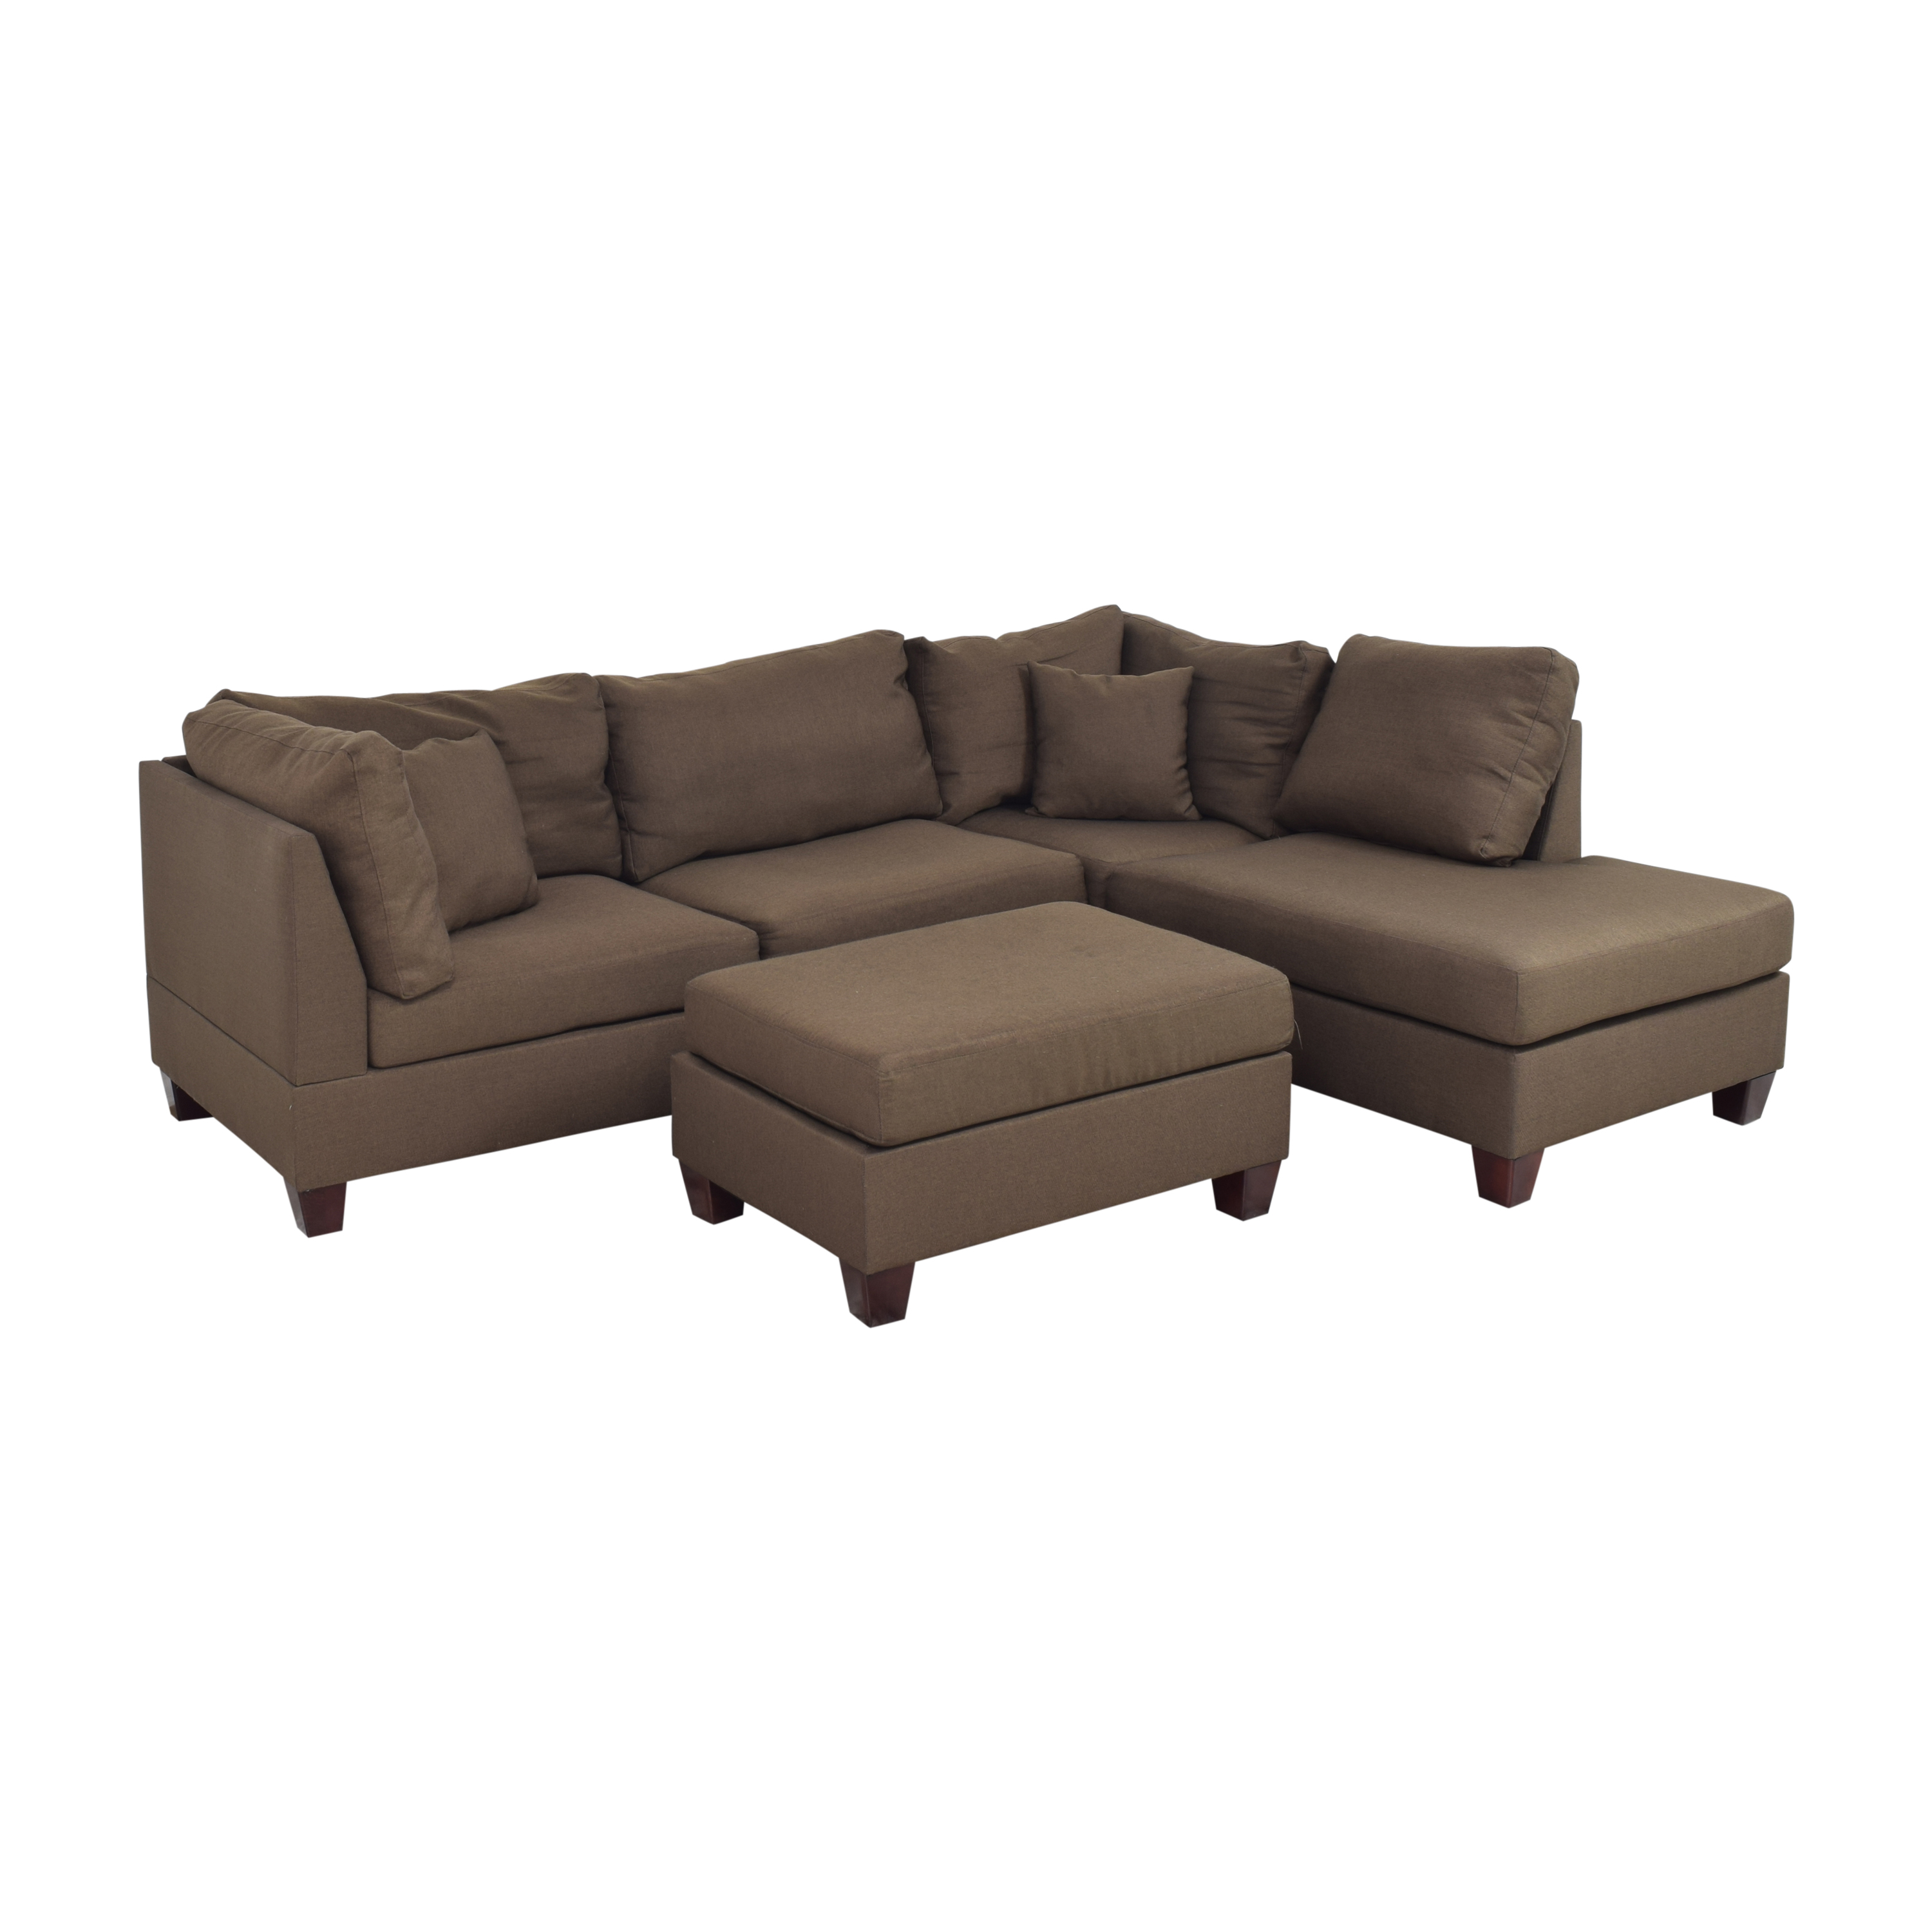 shop Wayfair Jacober Wide Reversible Chaise Sectional with Ottoman Wayfair